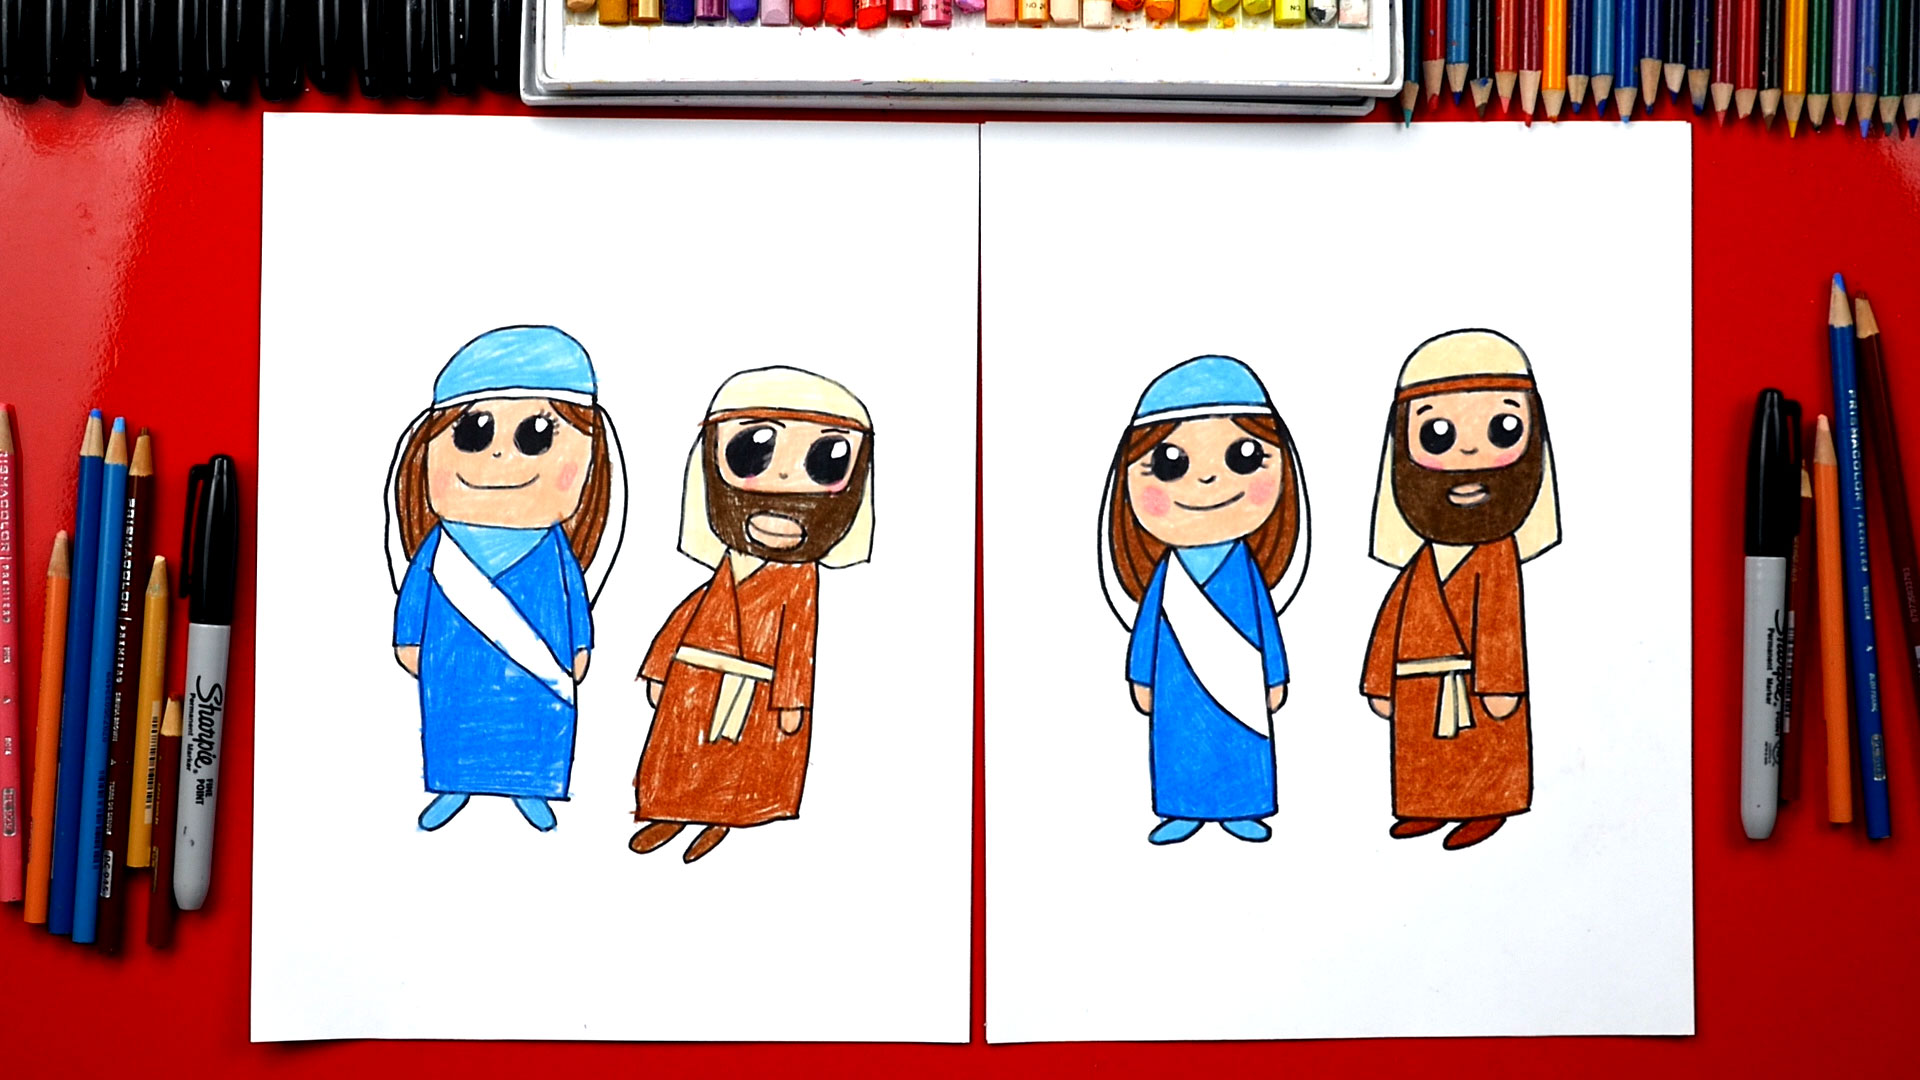 Joseph Und Joseph How To Draw Mary And Joseph Nativity Art For Kids Hub